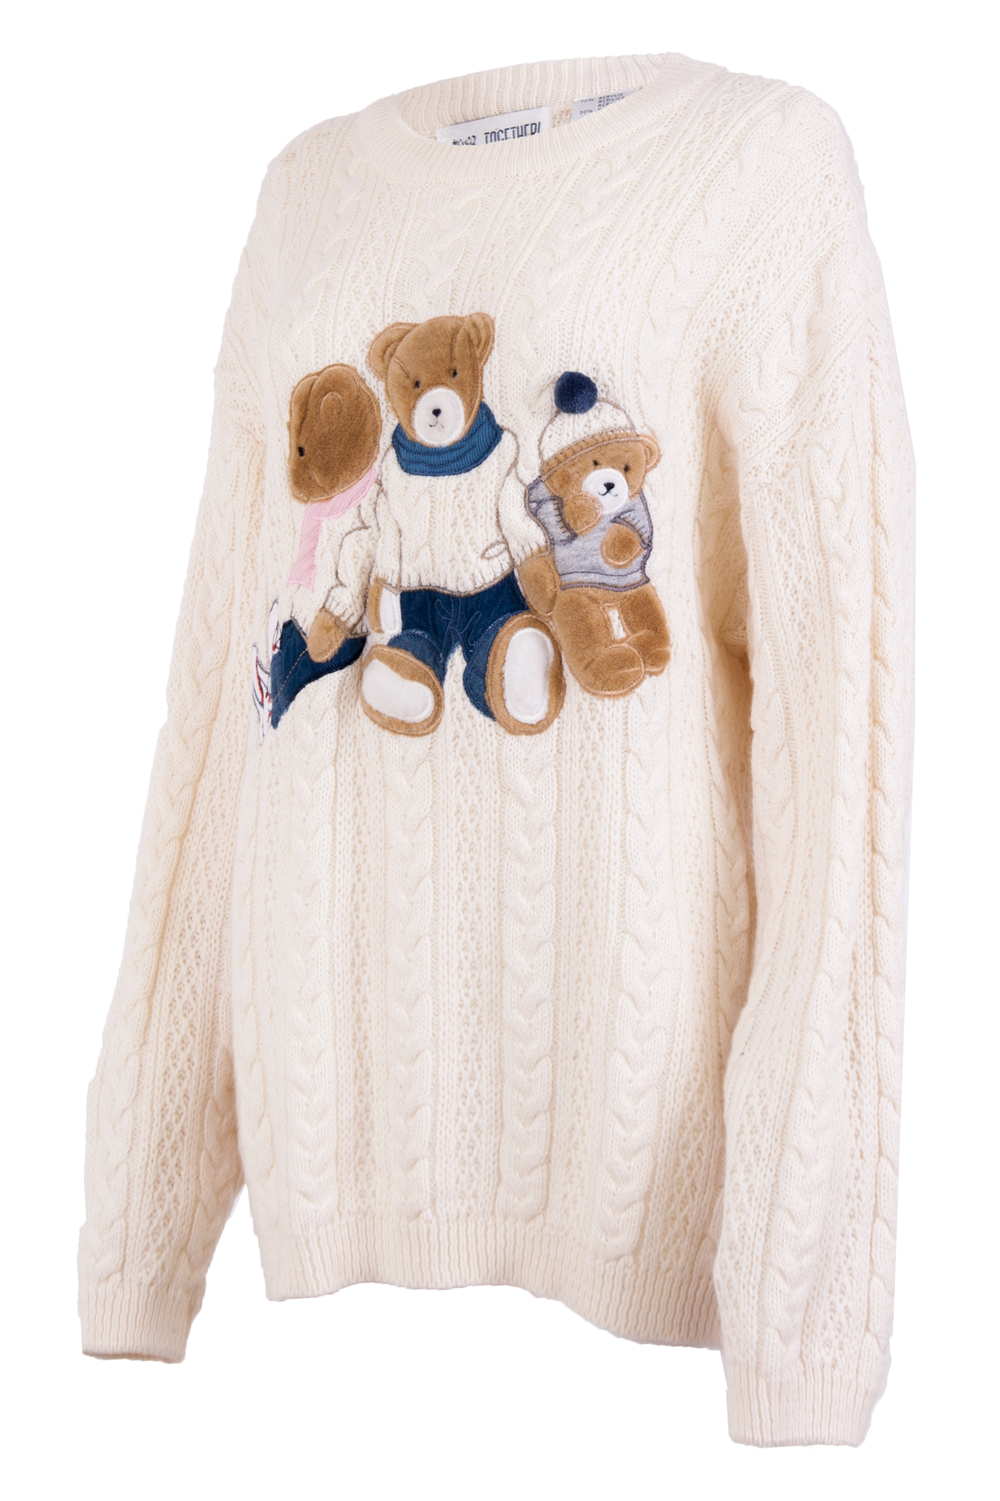 Vintage sweater with teddy bear embroidery